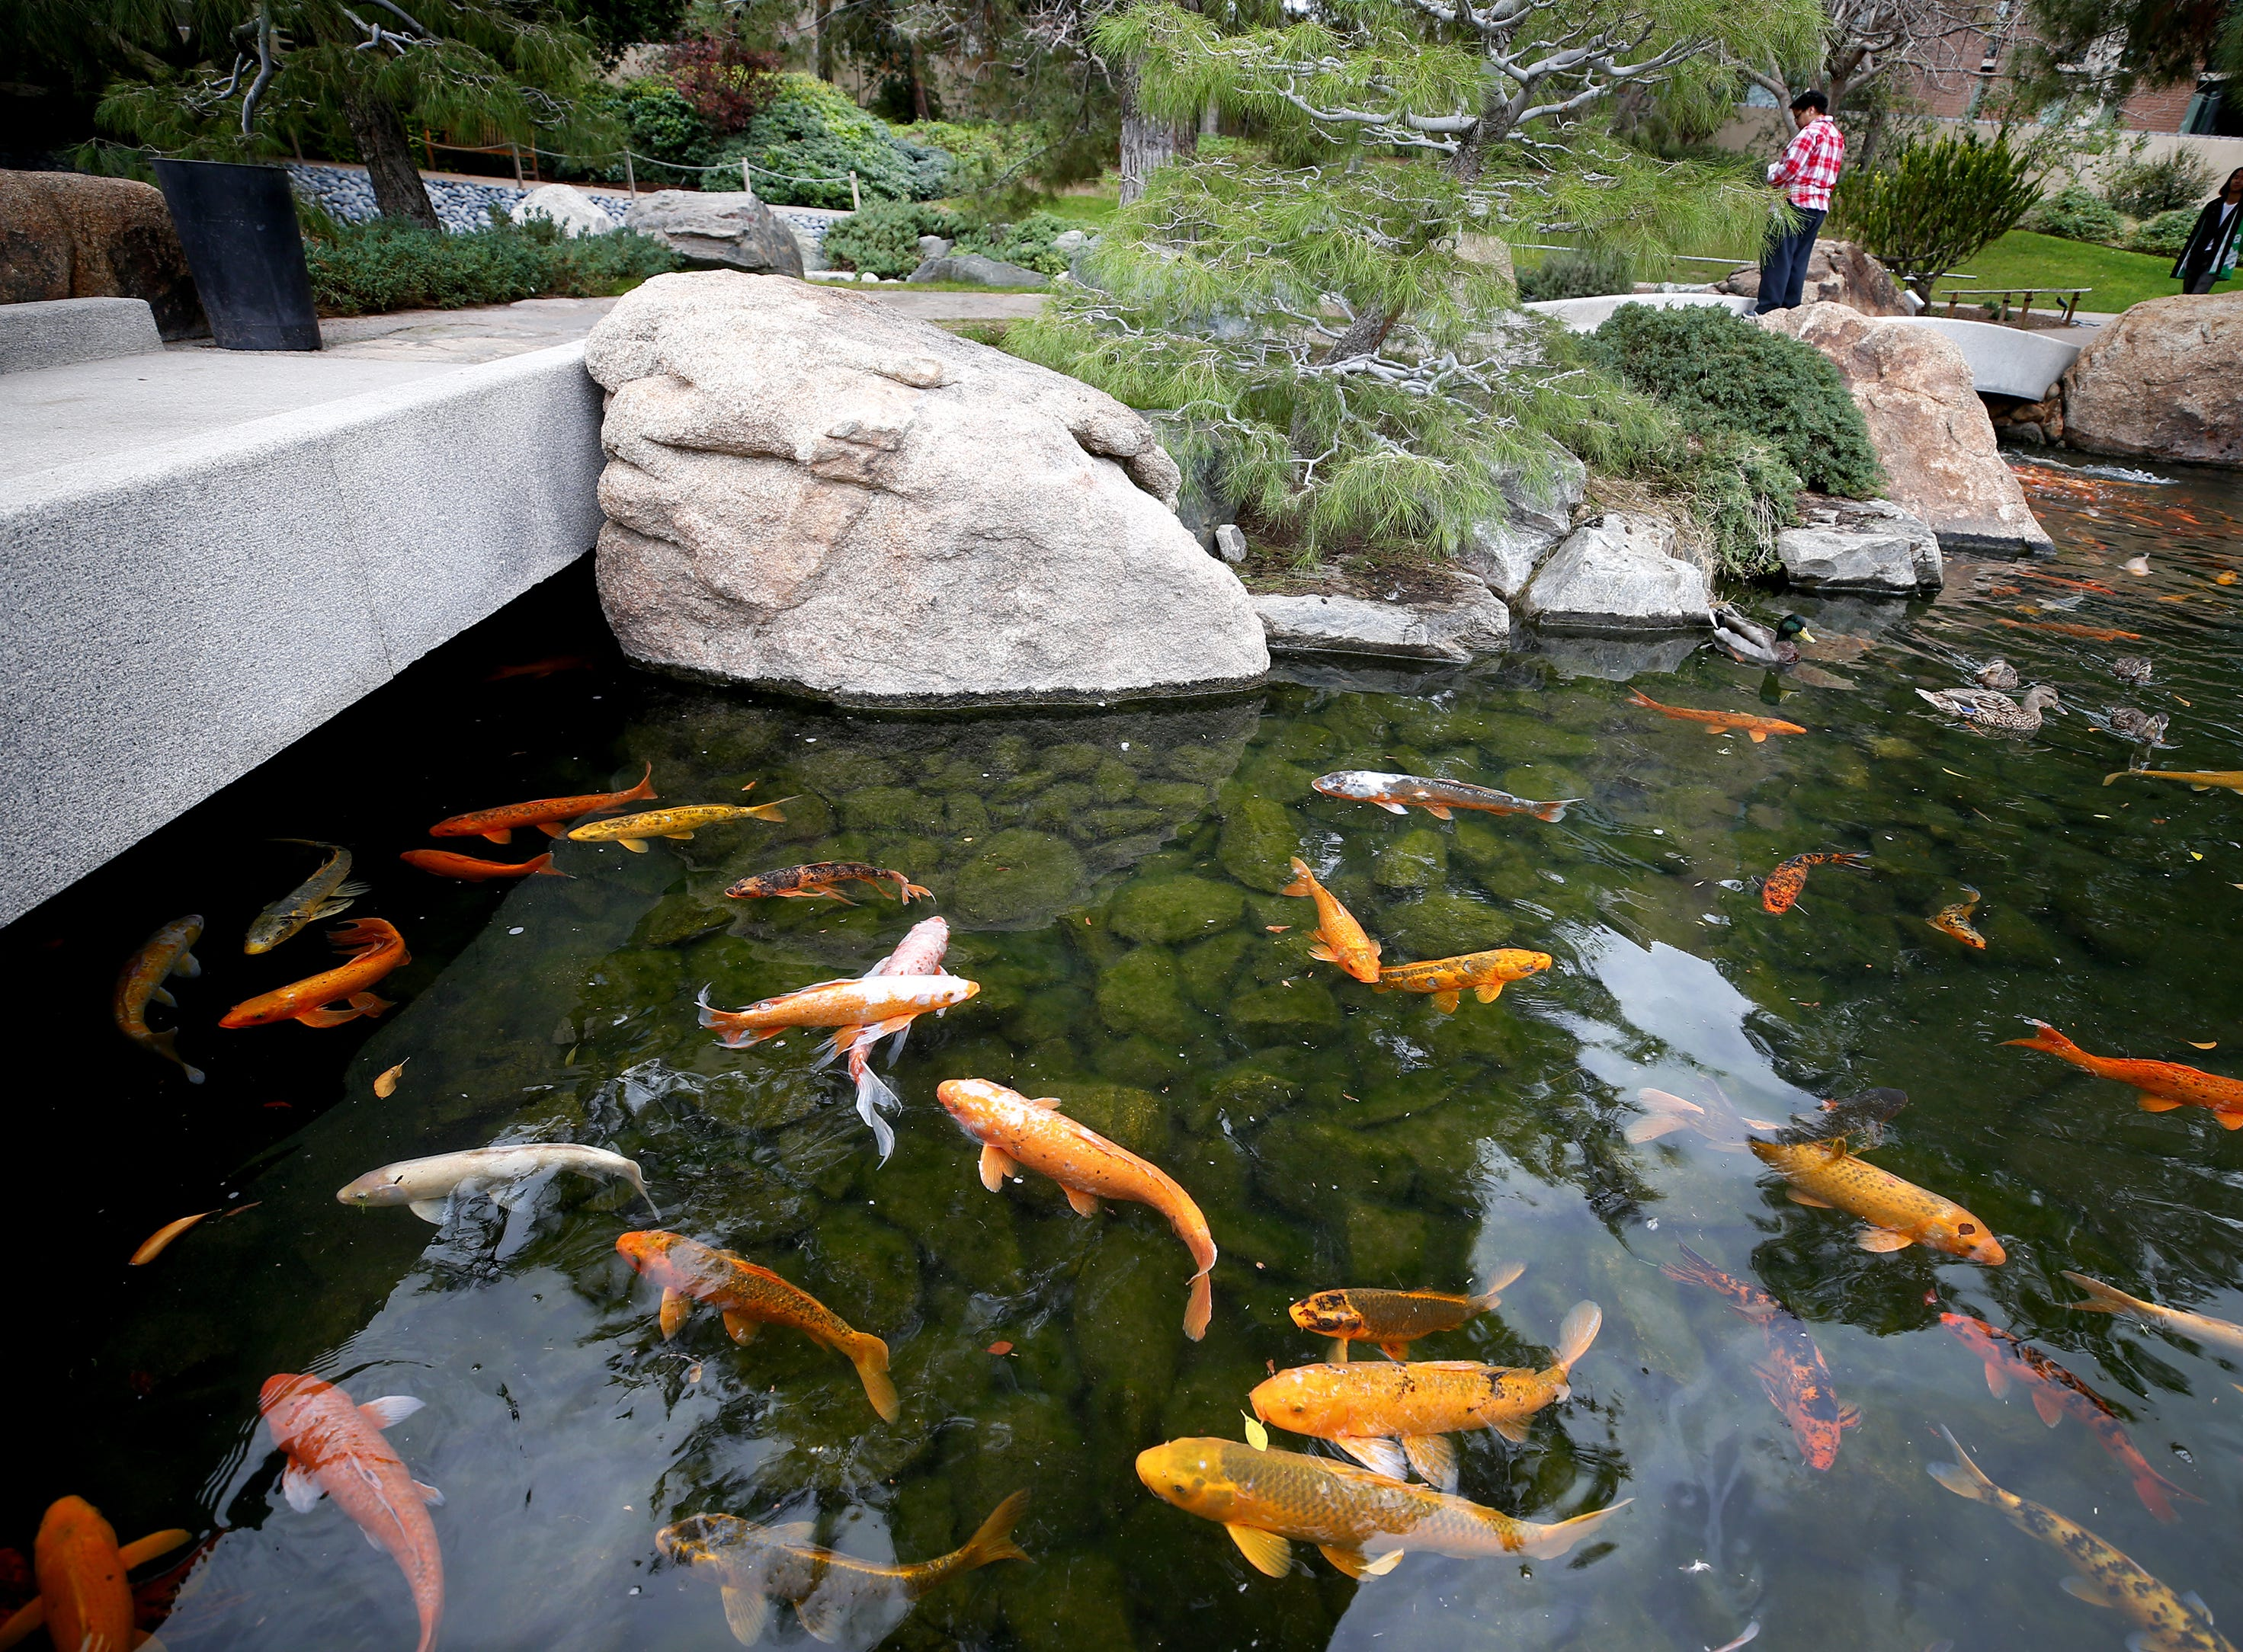 Japanese Friendship Garden offers a peaceful stroll to visitors in the heart of downtown Phoenix on January 10, 2019.